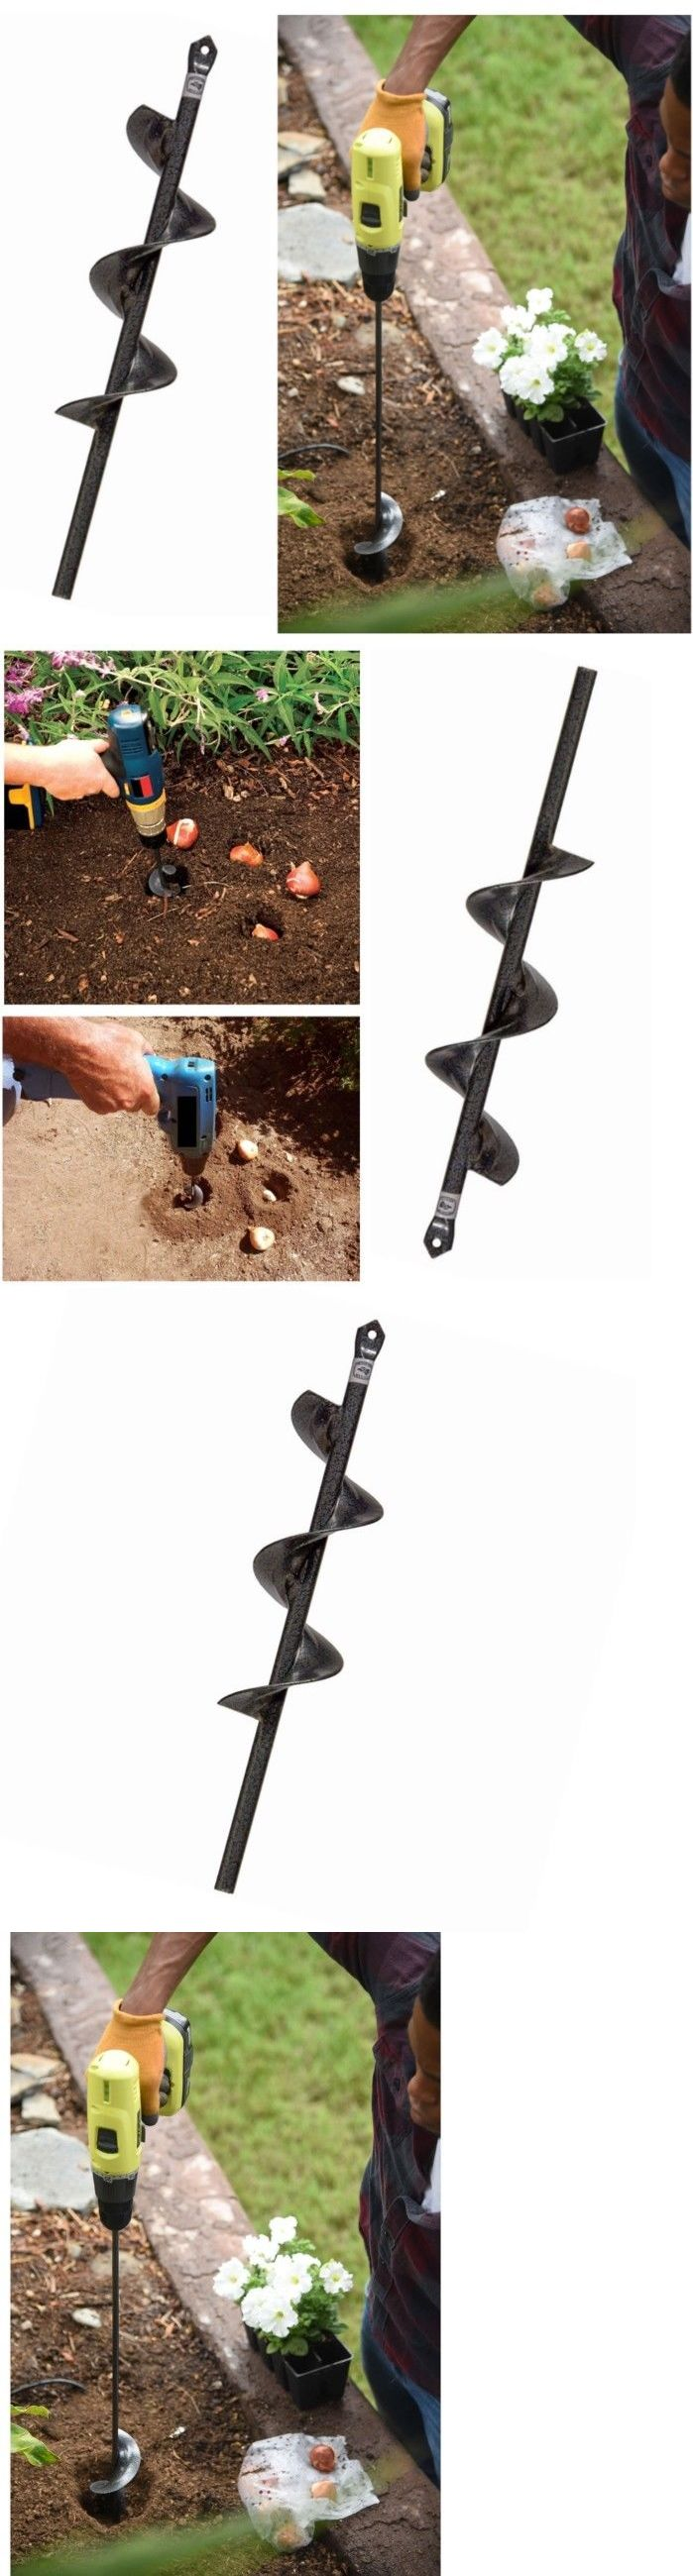 Other Garden Tools And Equipment 3186 Roto Planter Garden Auger